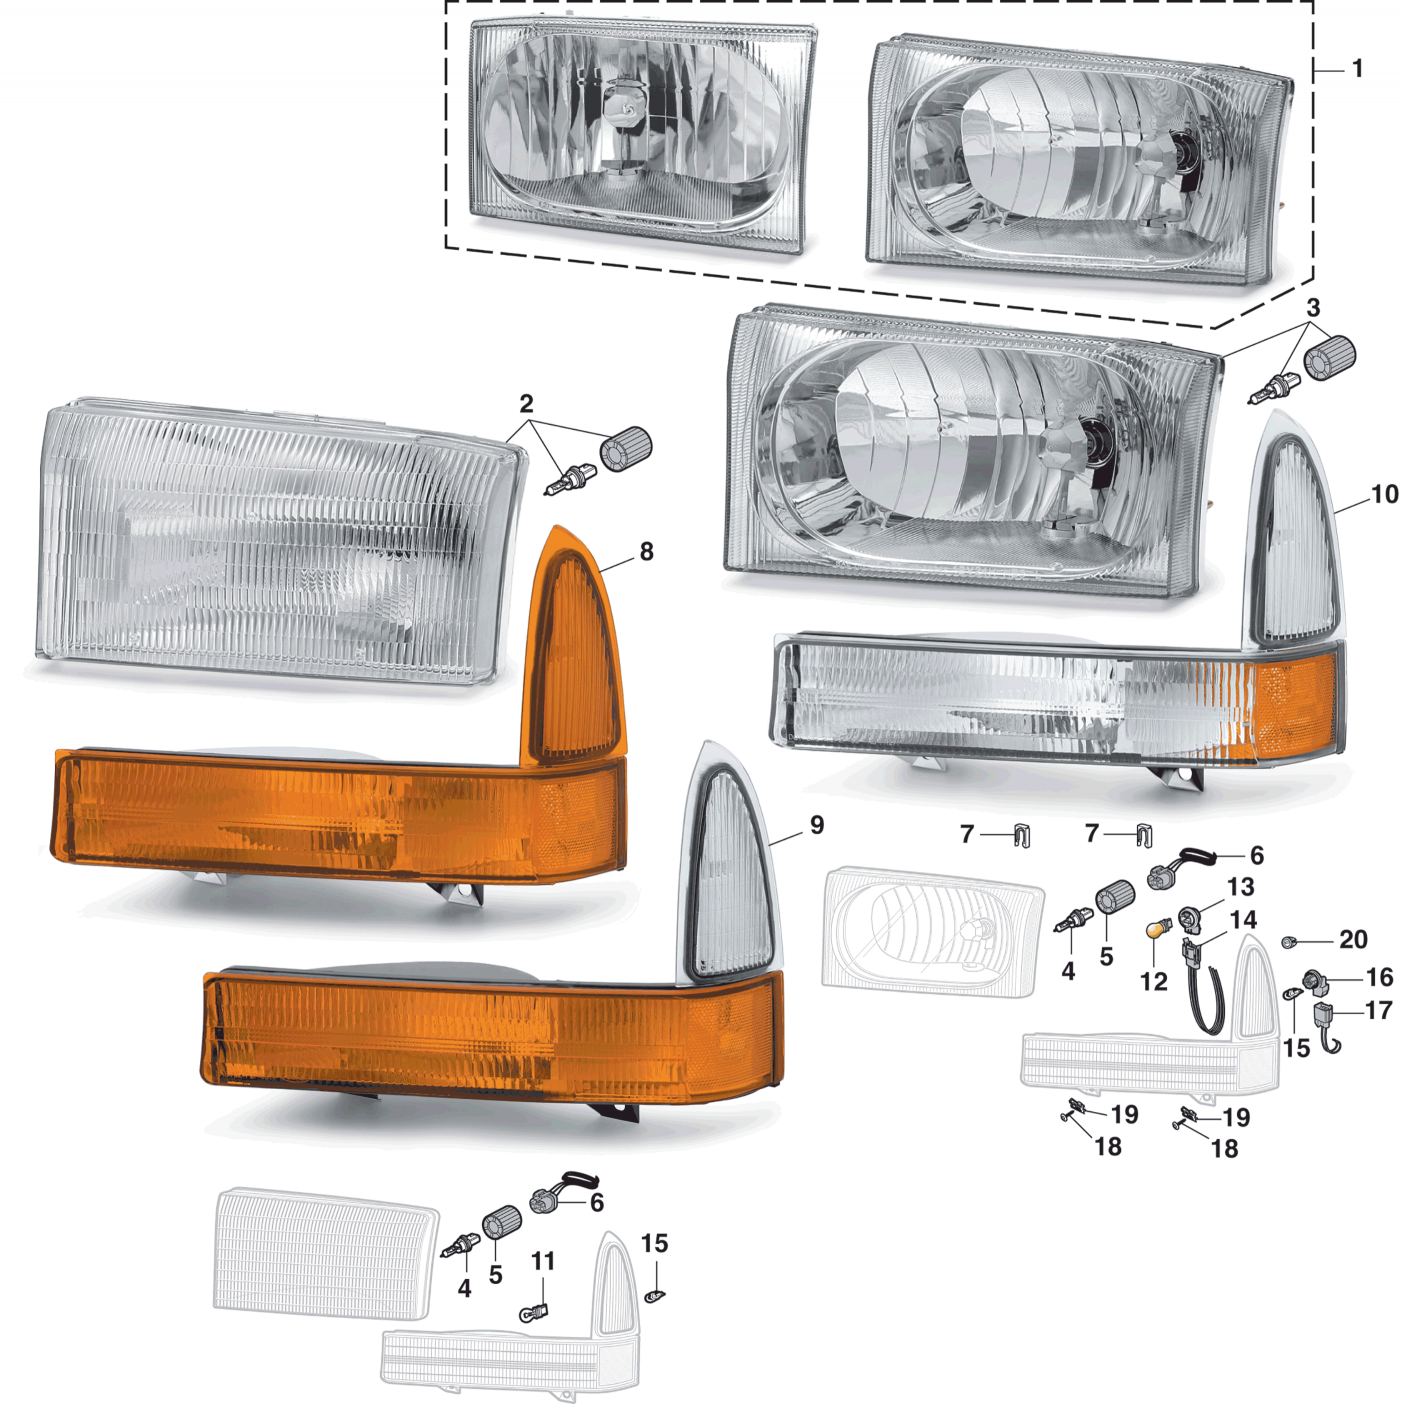 Headlight and Parklight - With Composite Style Headlights